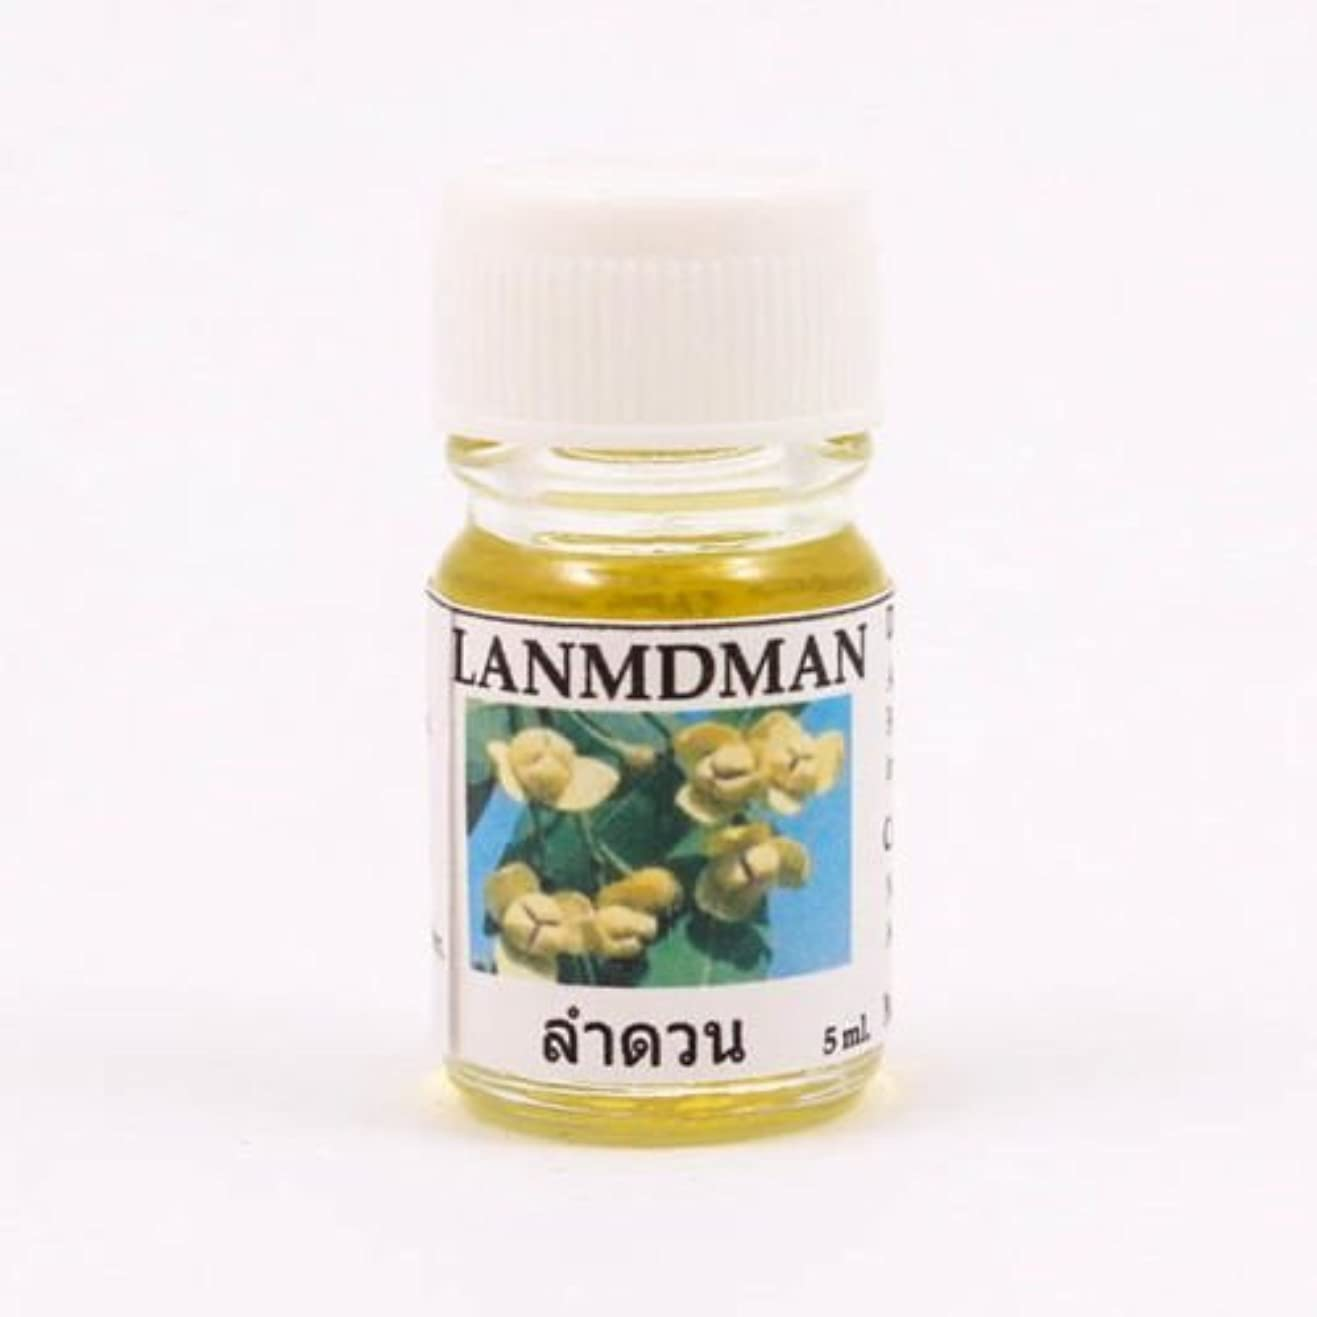 6X Lanmdman Aroma Fragrance Essential Oil 5ML. cc Diffuser Burner Therapy